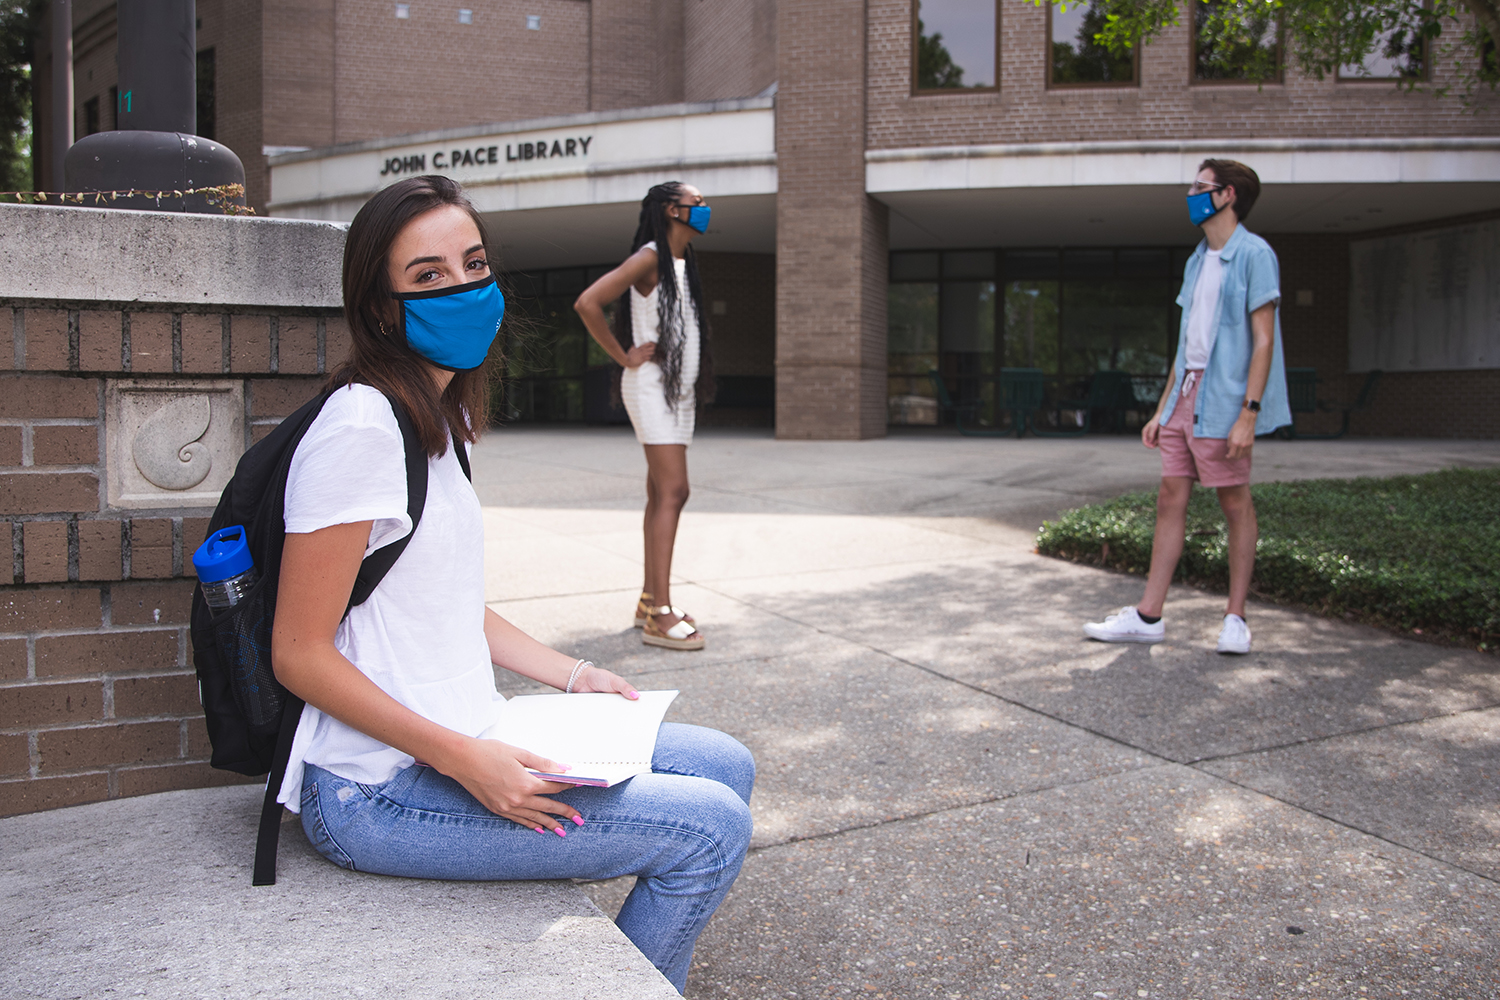 UWF students venture about campus while wearing face protection on Aug. 19, 2020.